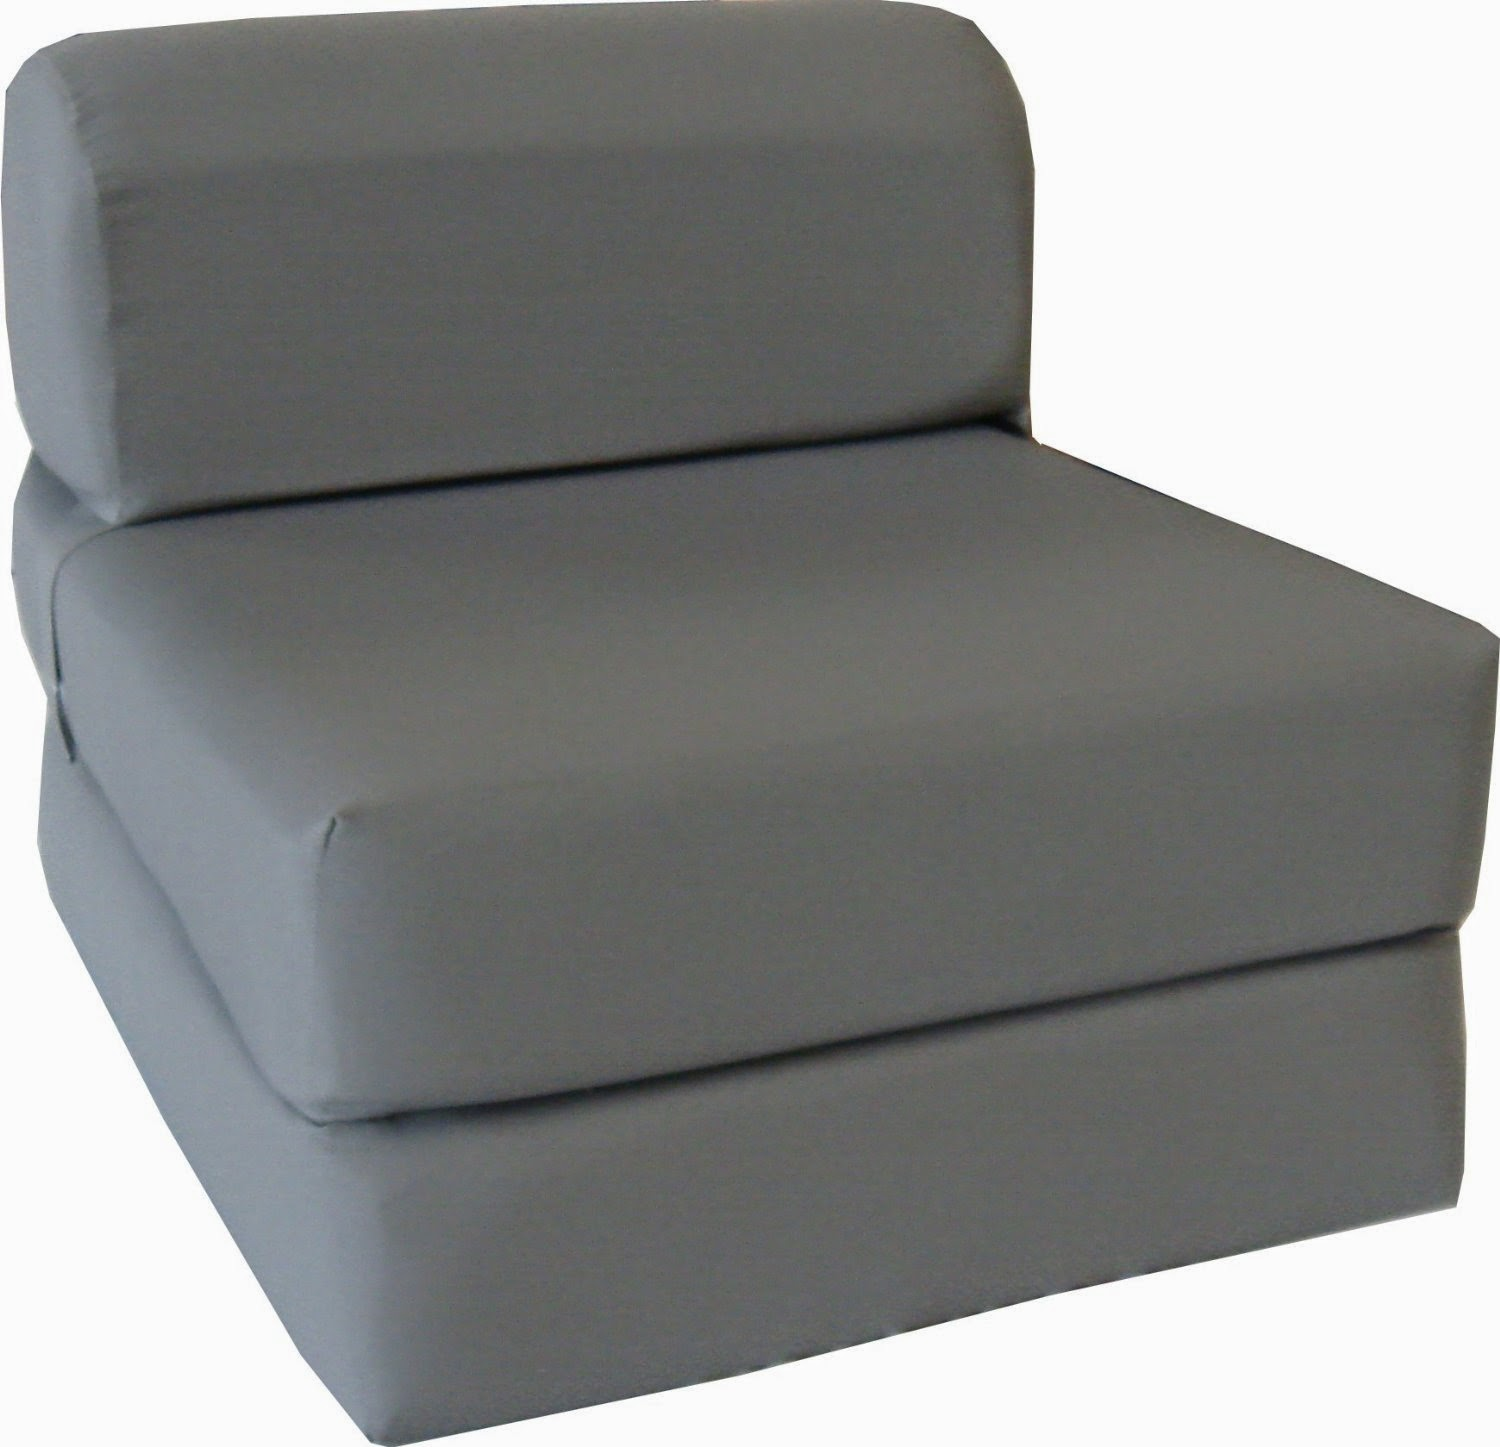 fold out sofa mattress dino jumbo black grey corner with matching swivel cuddle chair couch bed